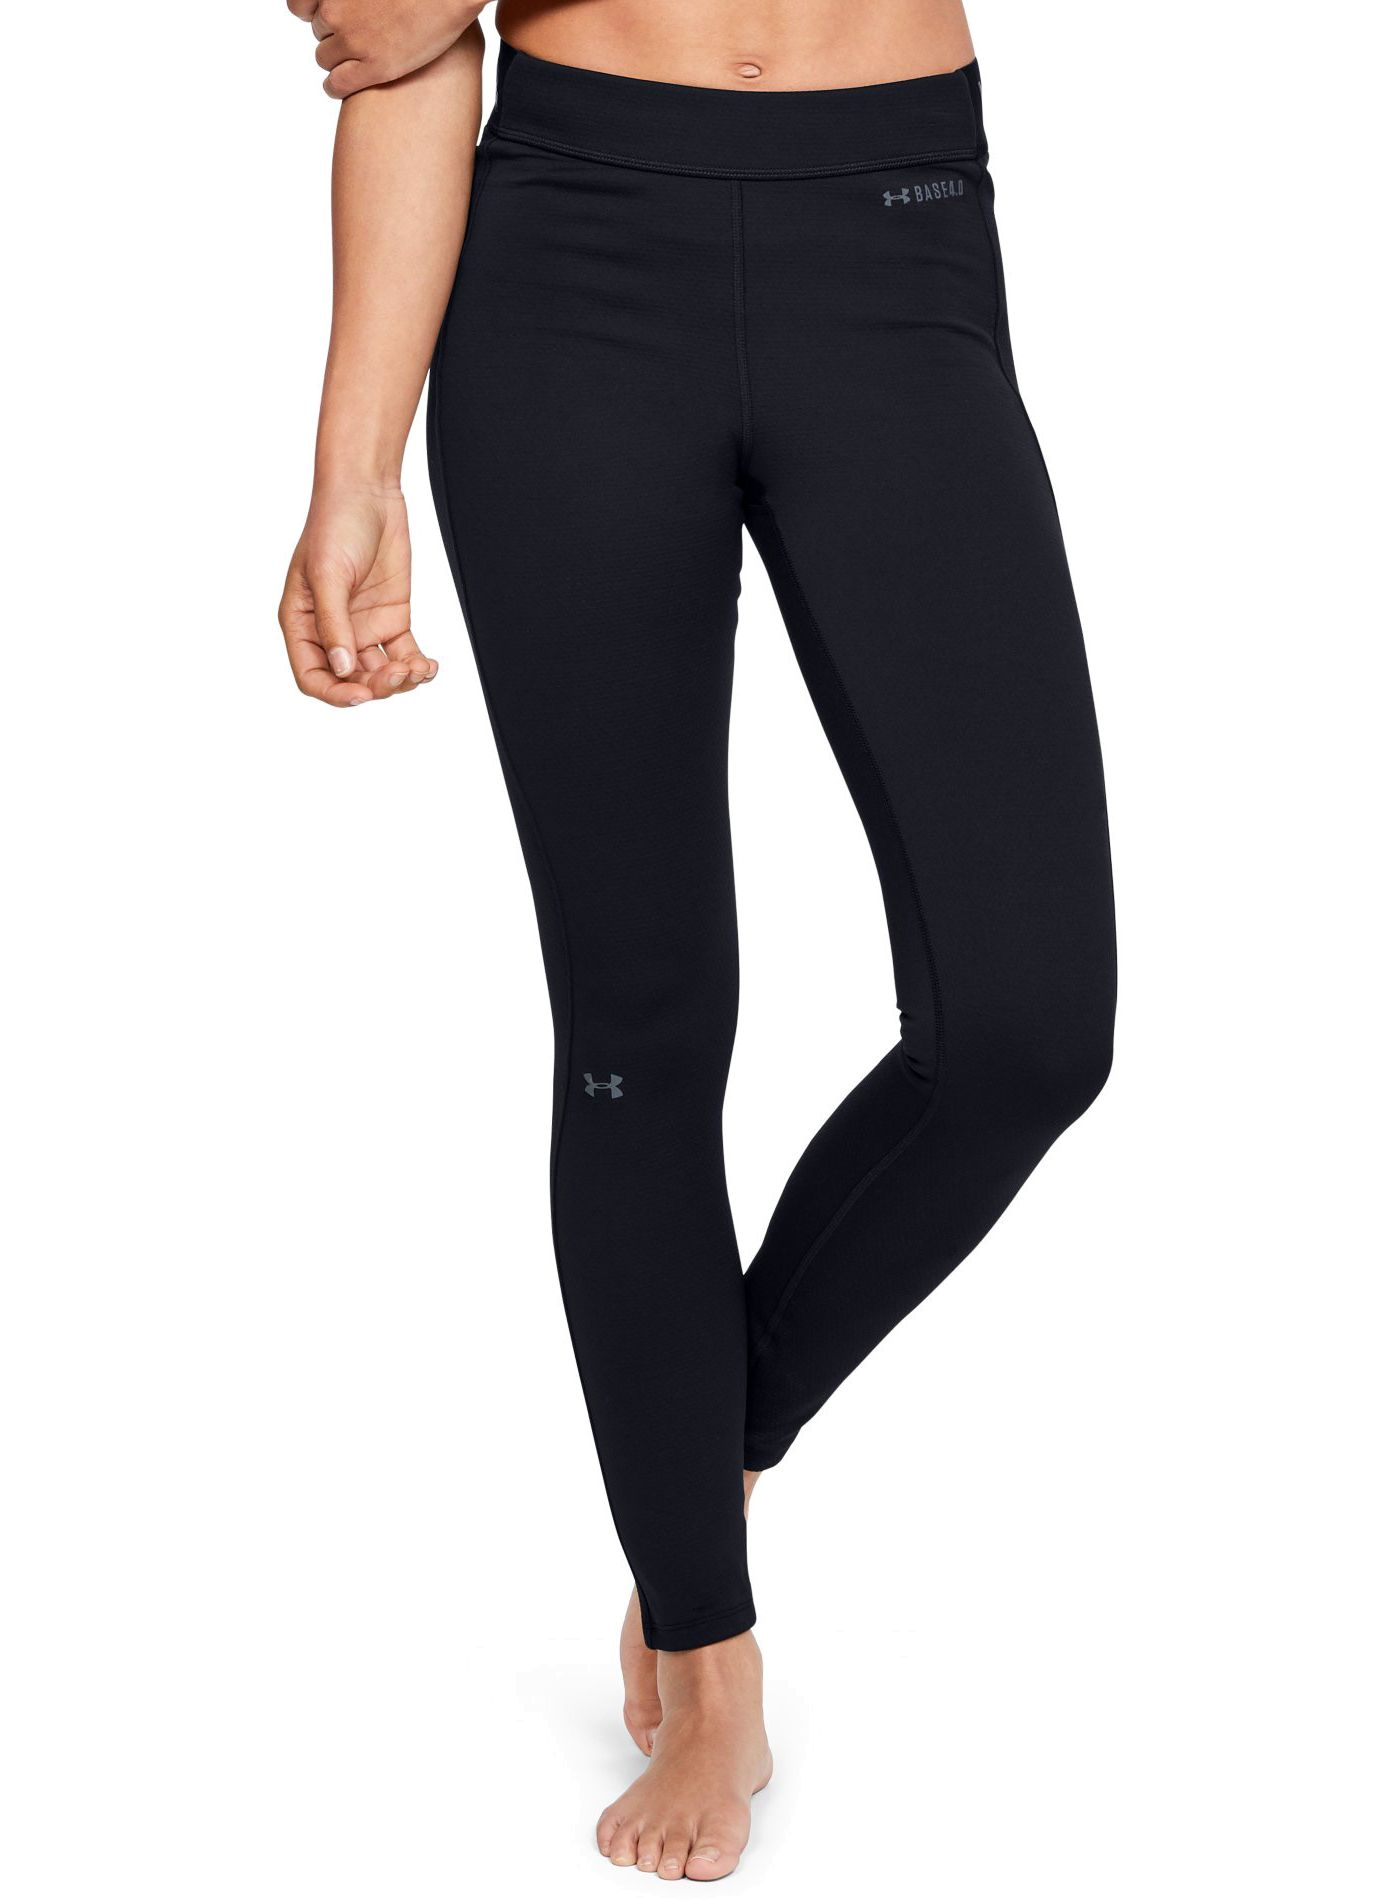 Under Armour Women's Base 4.0 Baselayer Leggings